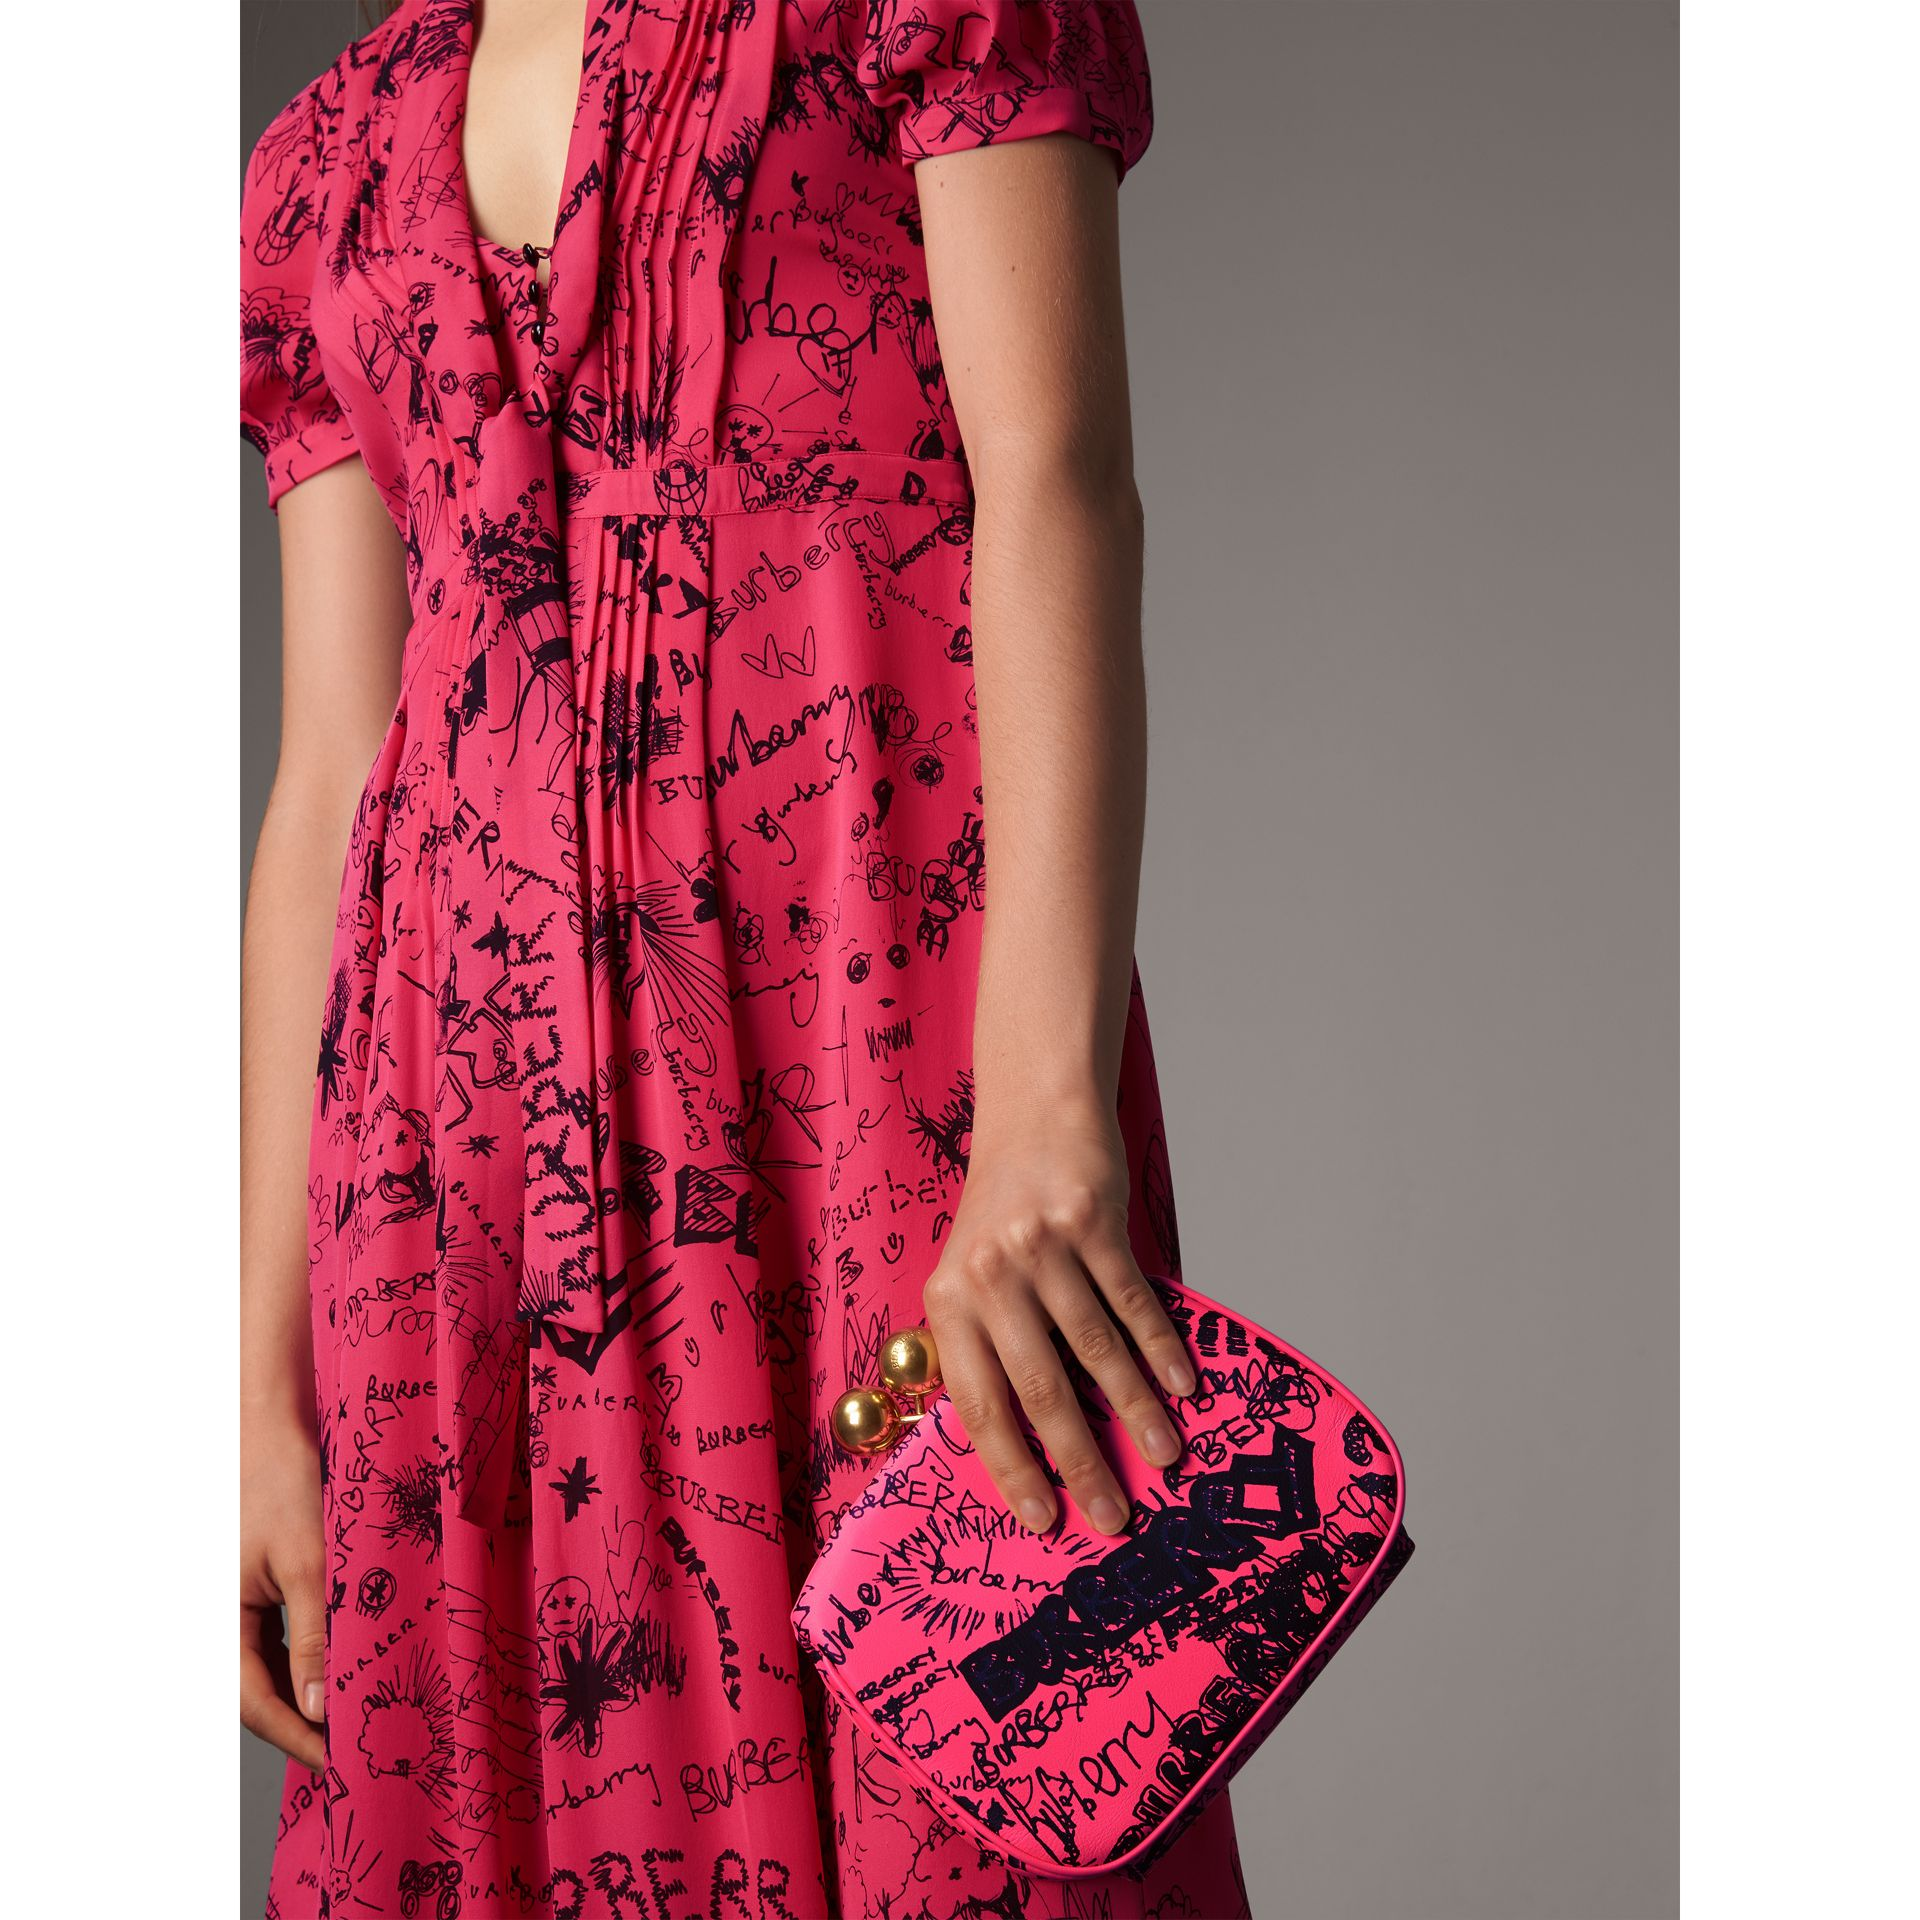 Small Doodle Print Leather Frame Bag in Neon Pink - Women | Burberry Australia - gallery image 6